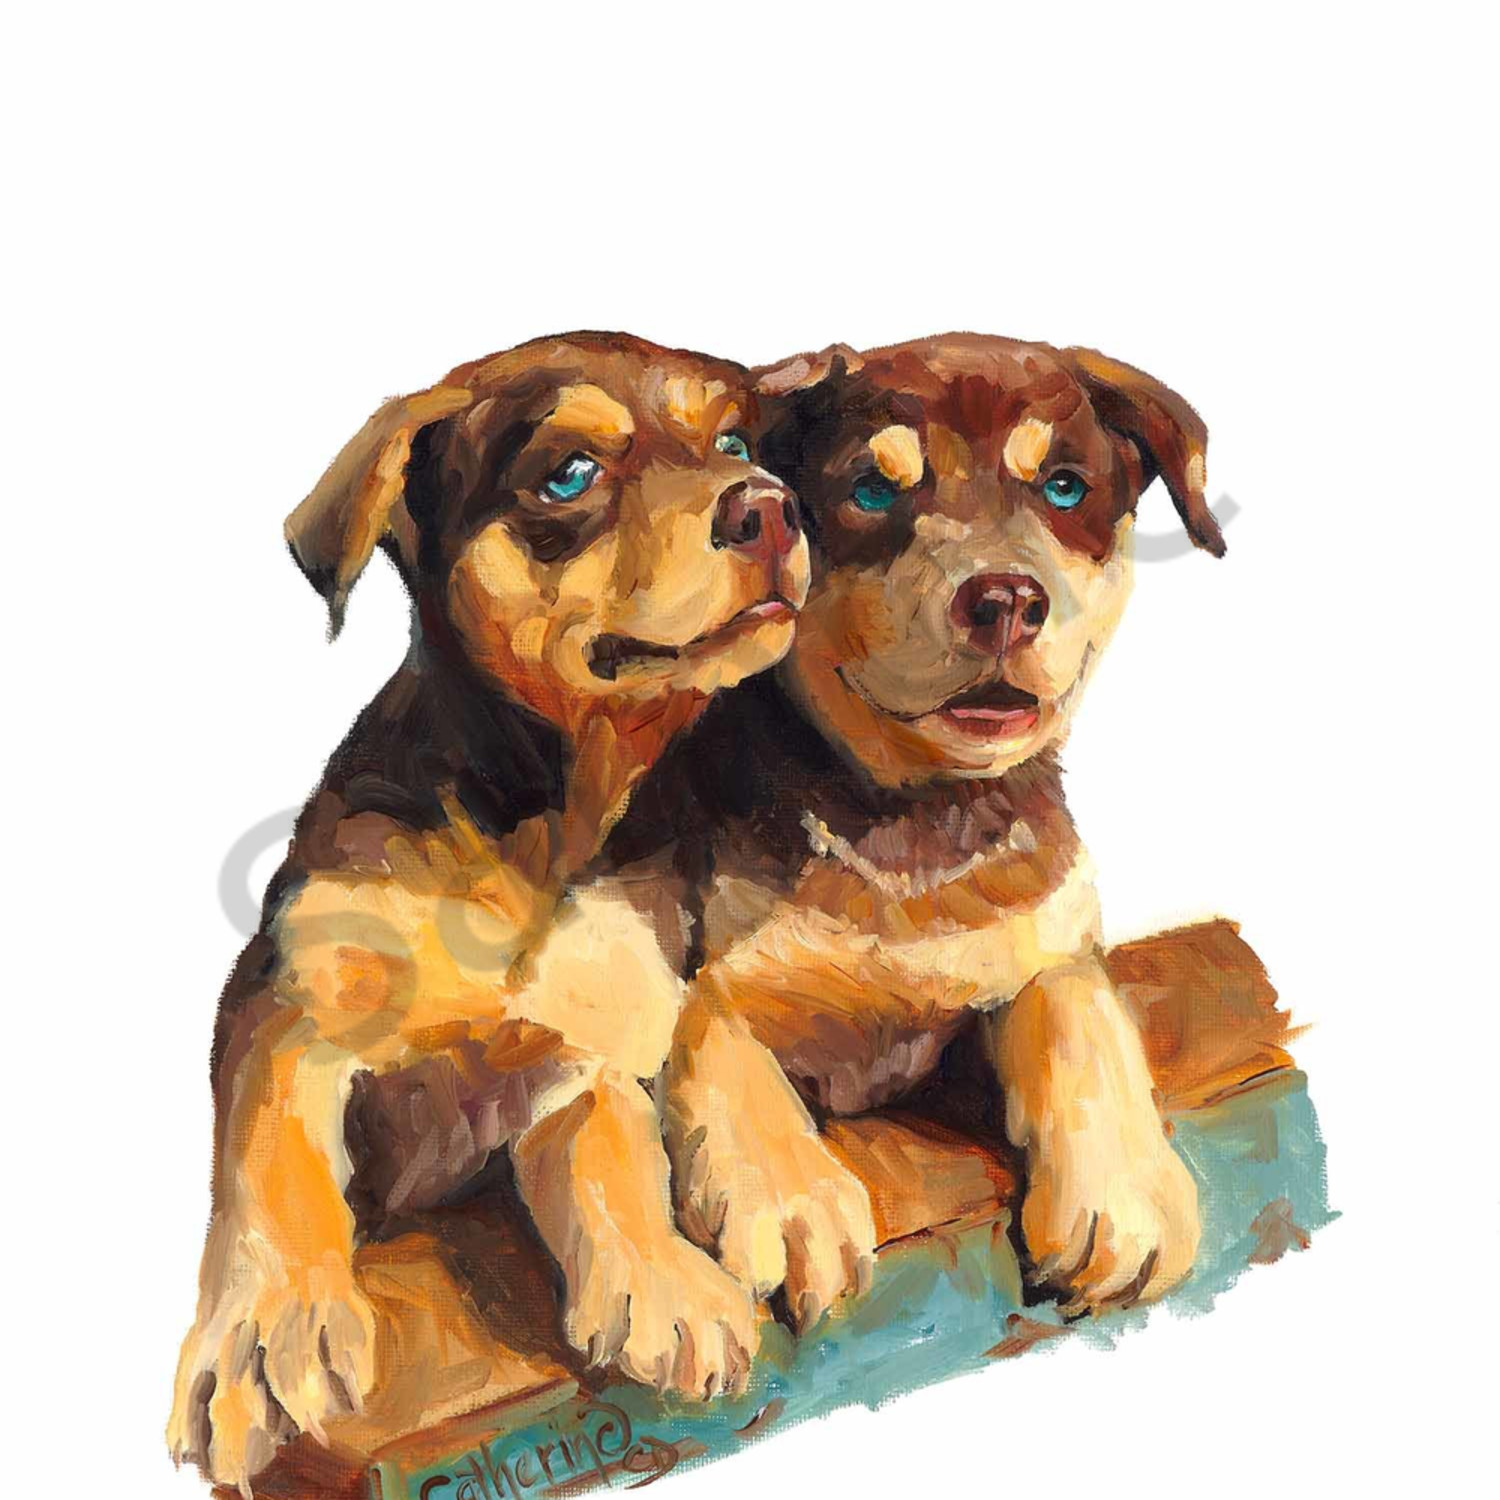 C clark dowden 070 tale of two pups 2000px zu3a65